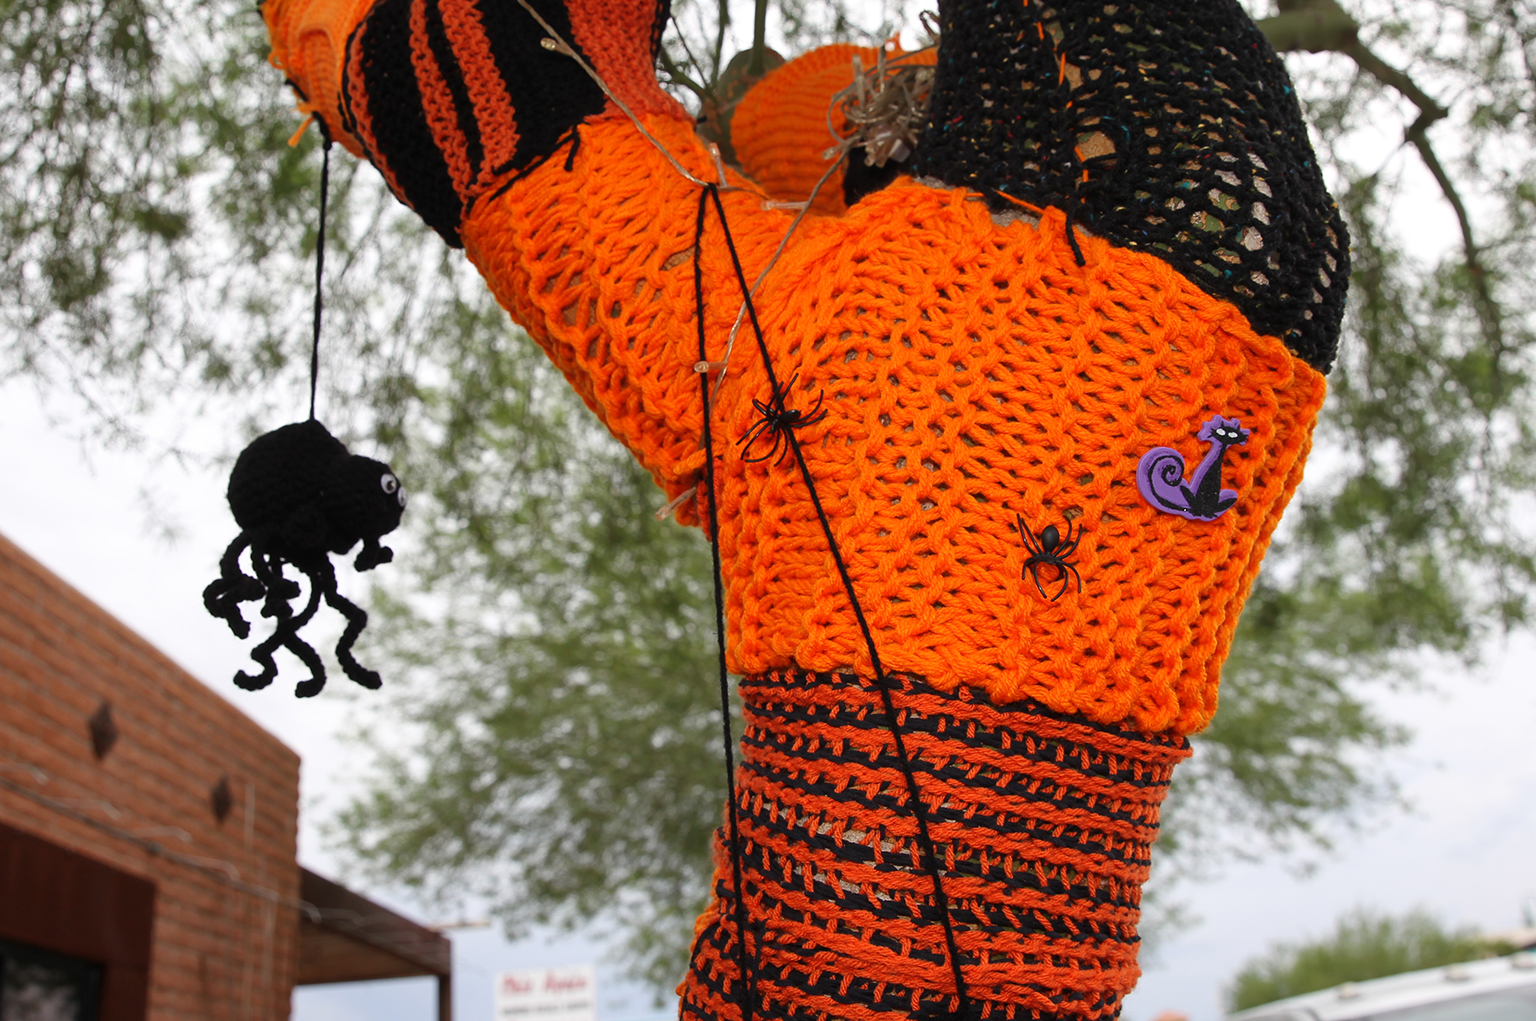 Knitting Knotty : River scene magazine knotty knitters decorate trees on